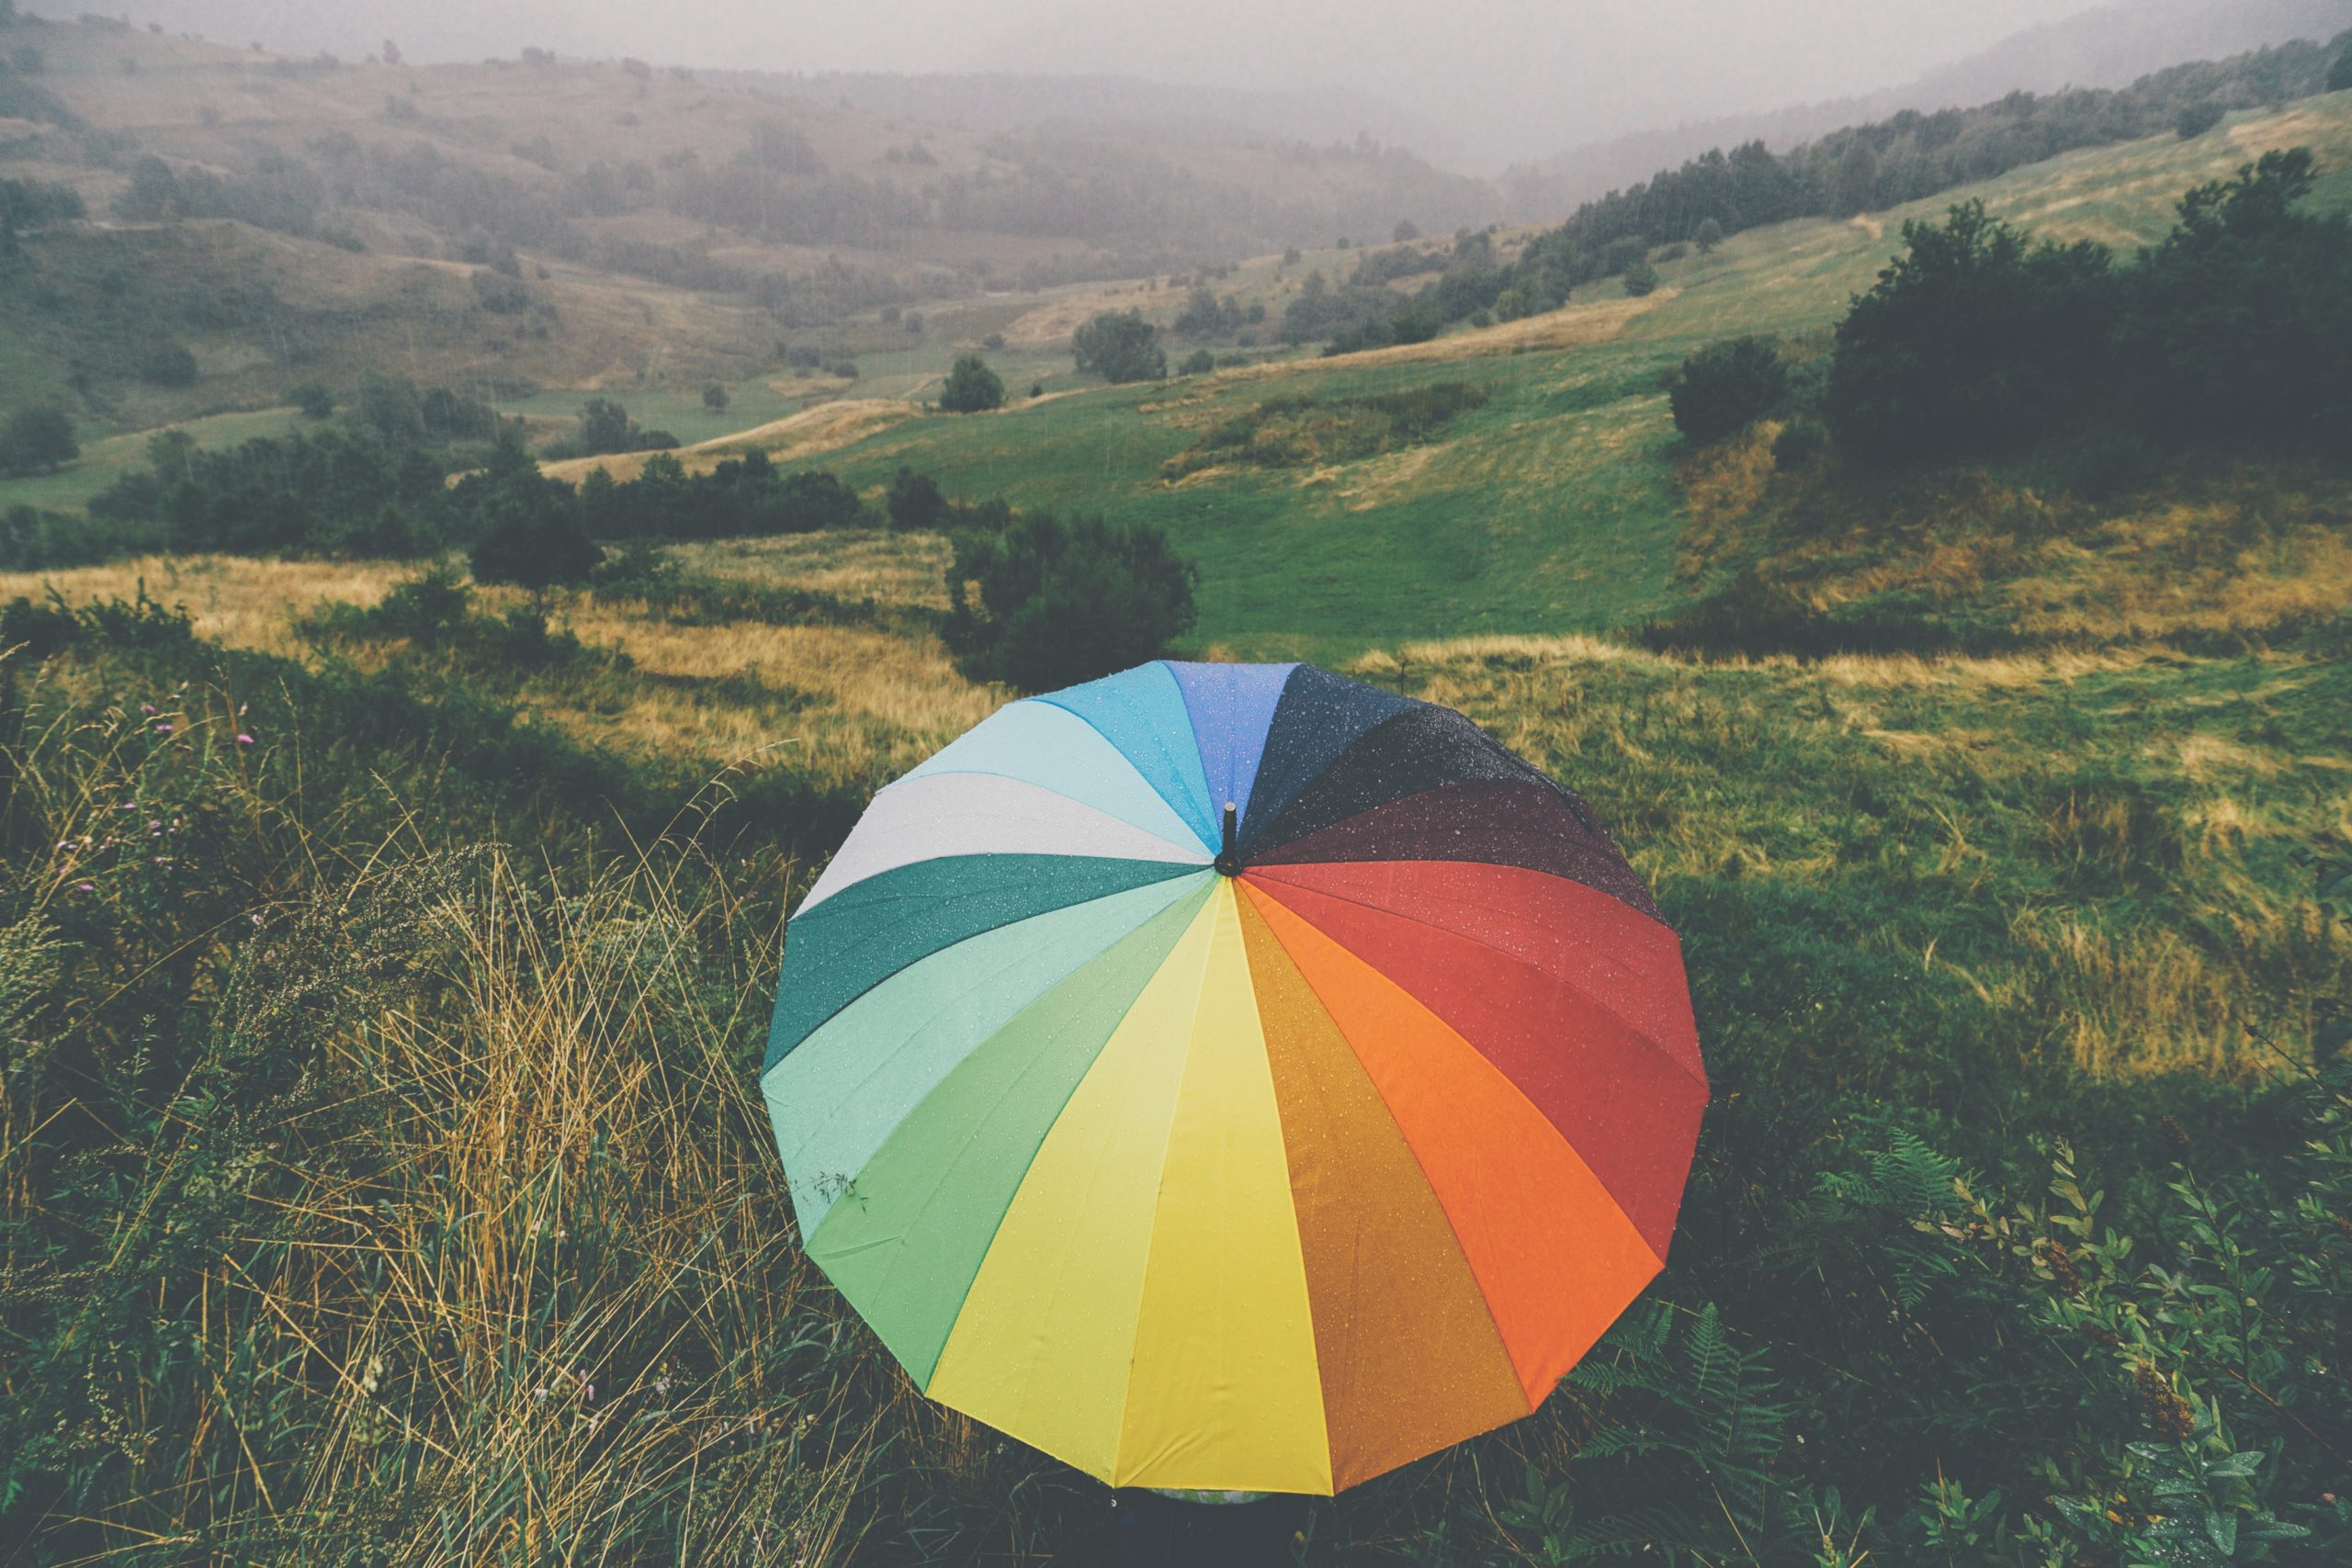 Rainbow umbrella in a rainy field